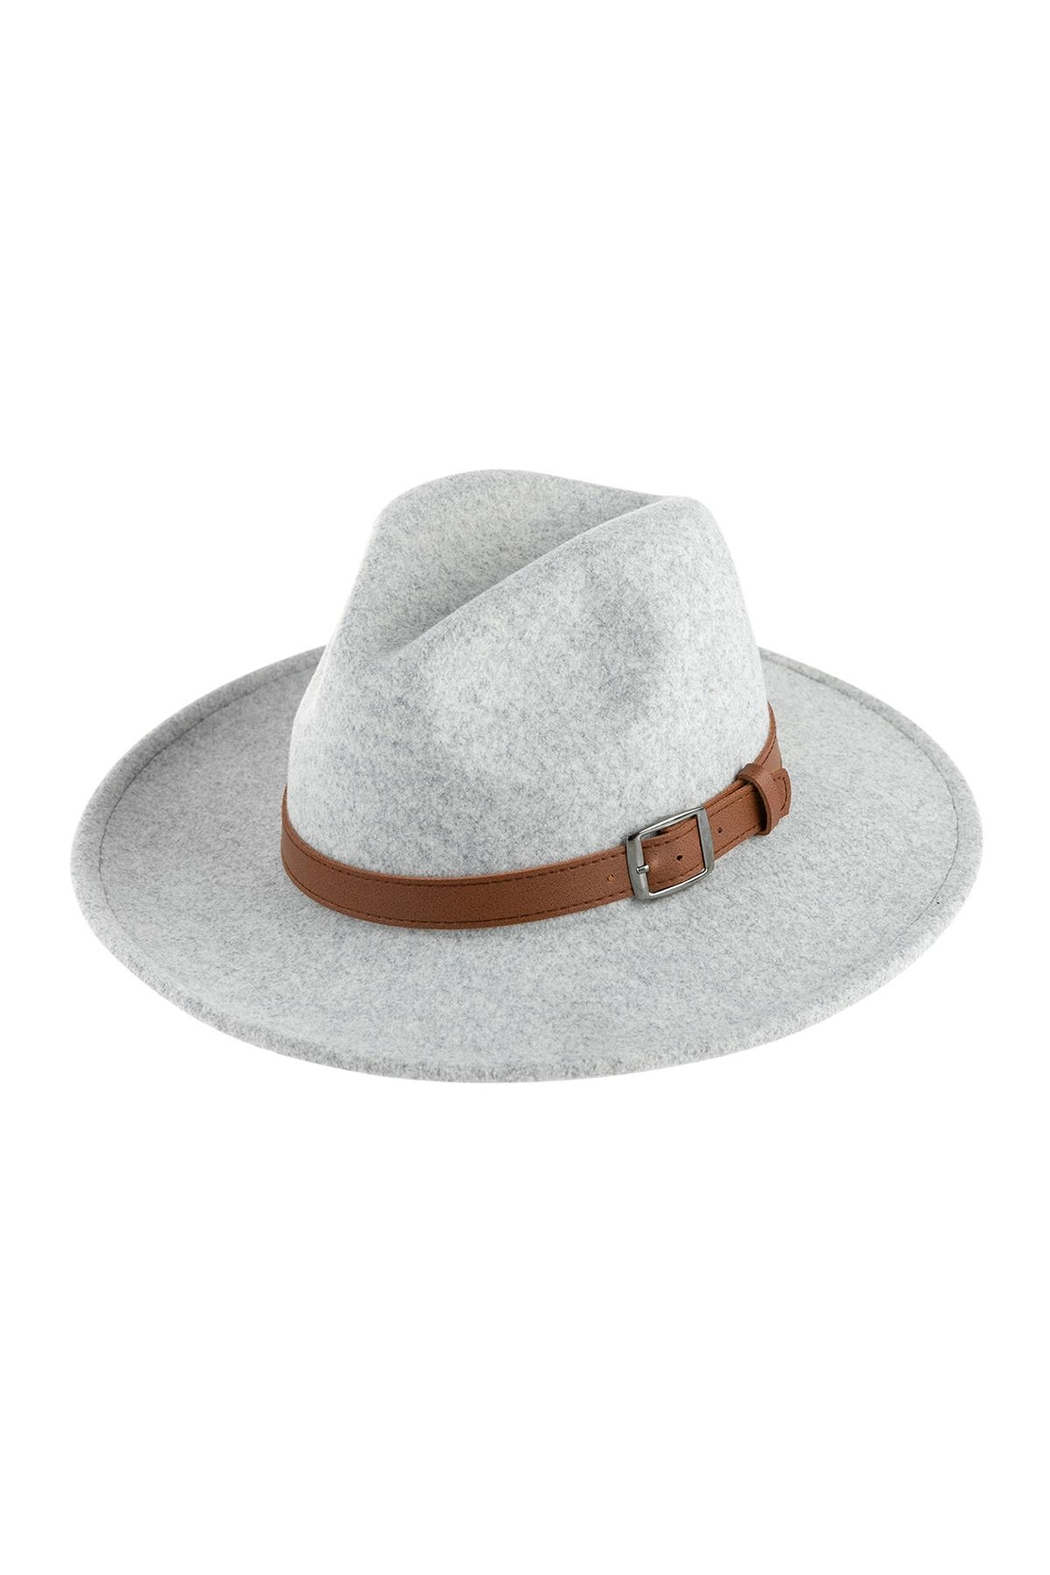 Riah Fashion Fashion Hat With Leather Belt Accent - Main Image